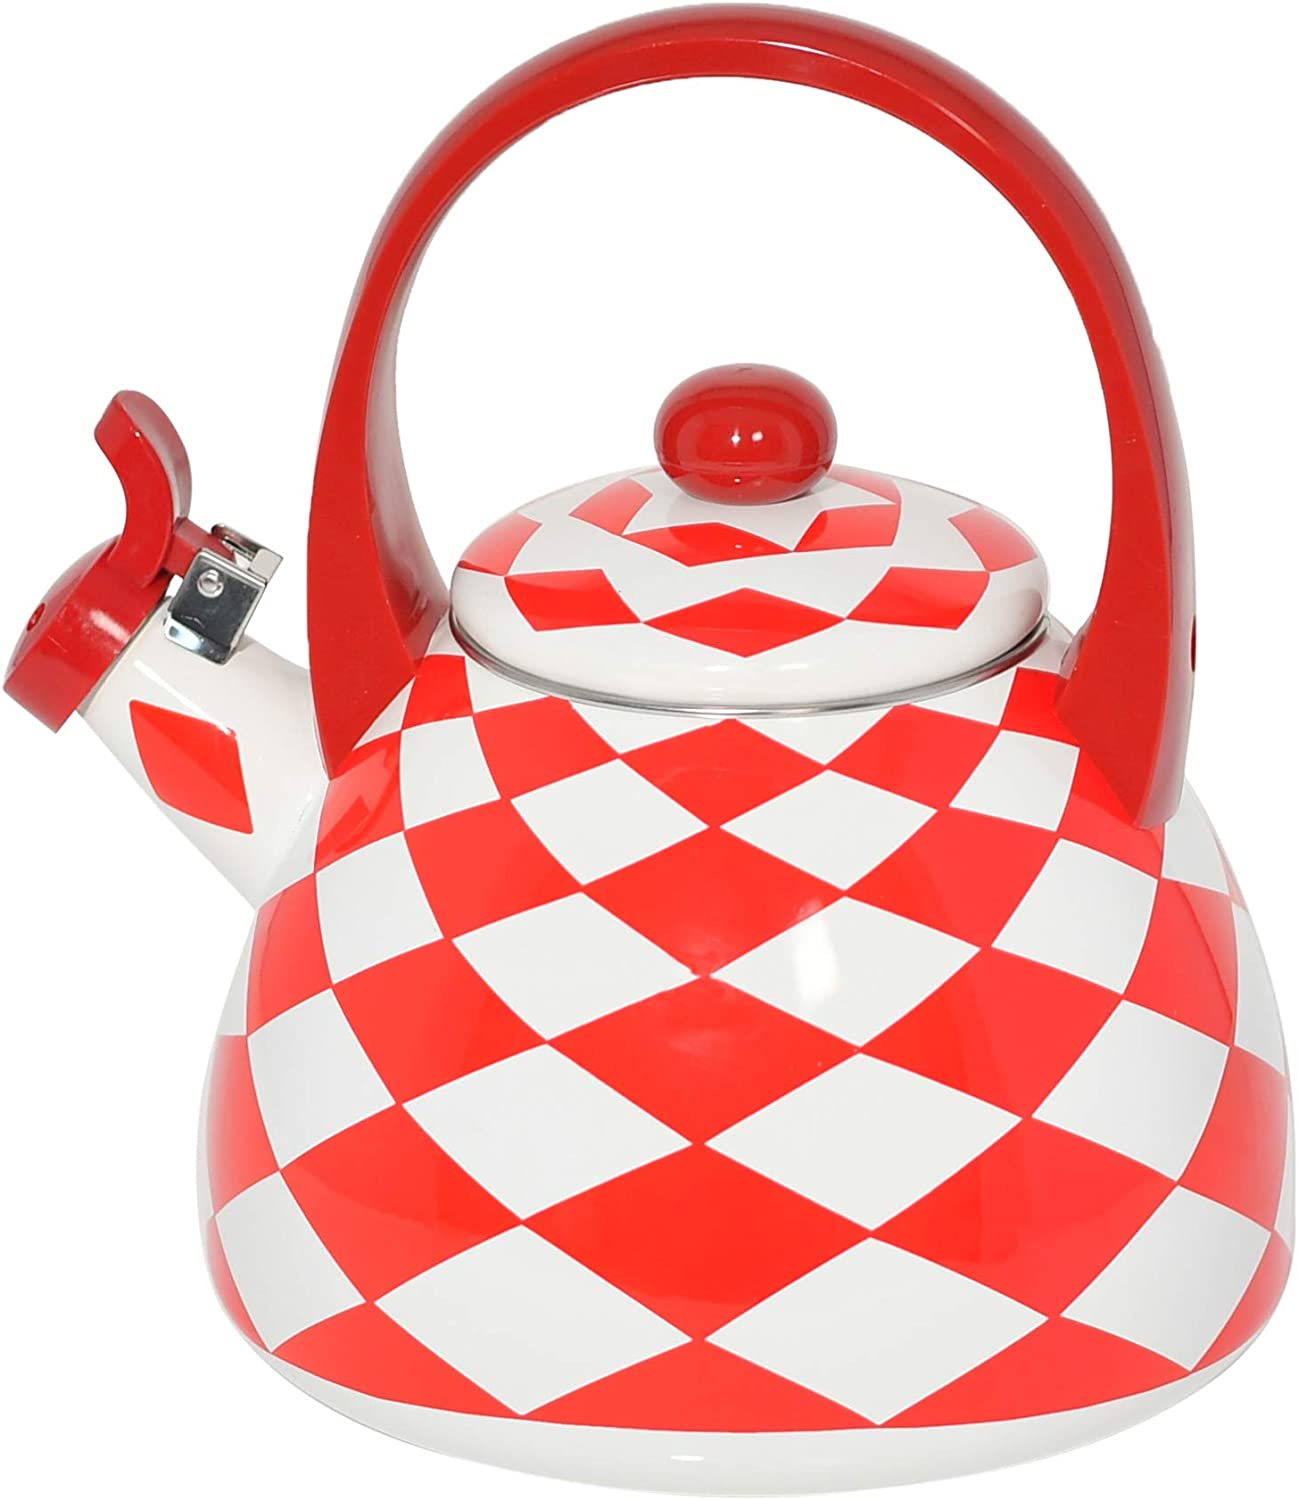 HOME-X Red Checkered Whistling Tea Kettle, Cute Animal Teapot, Kitchen Accessories and Decor